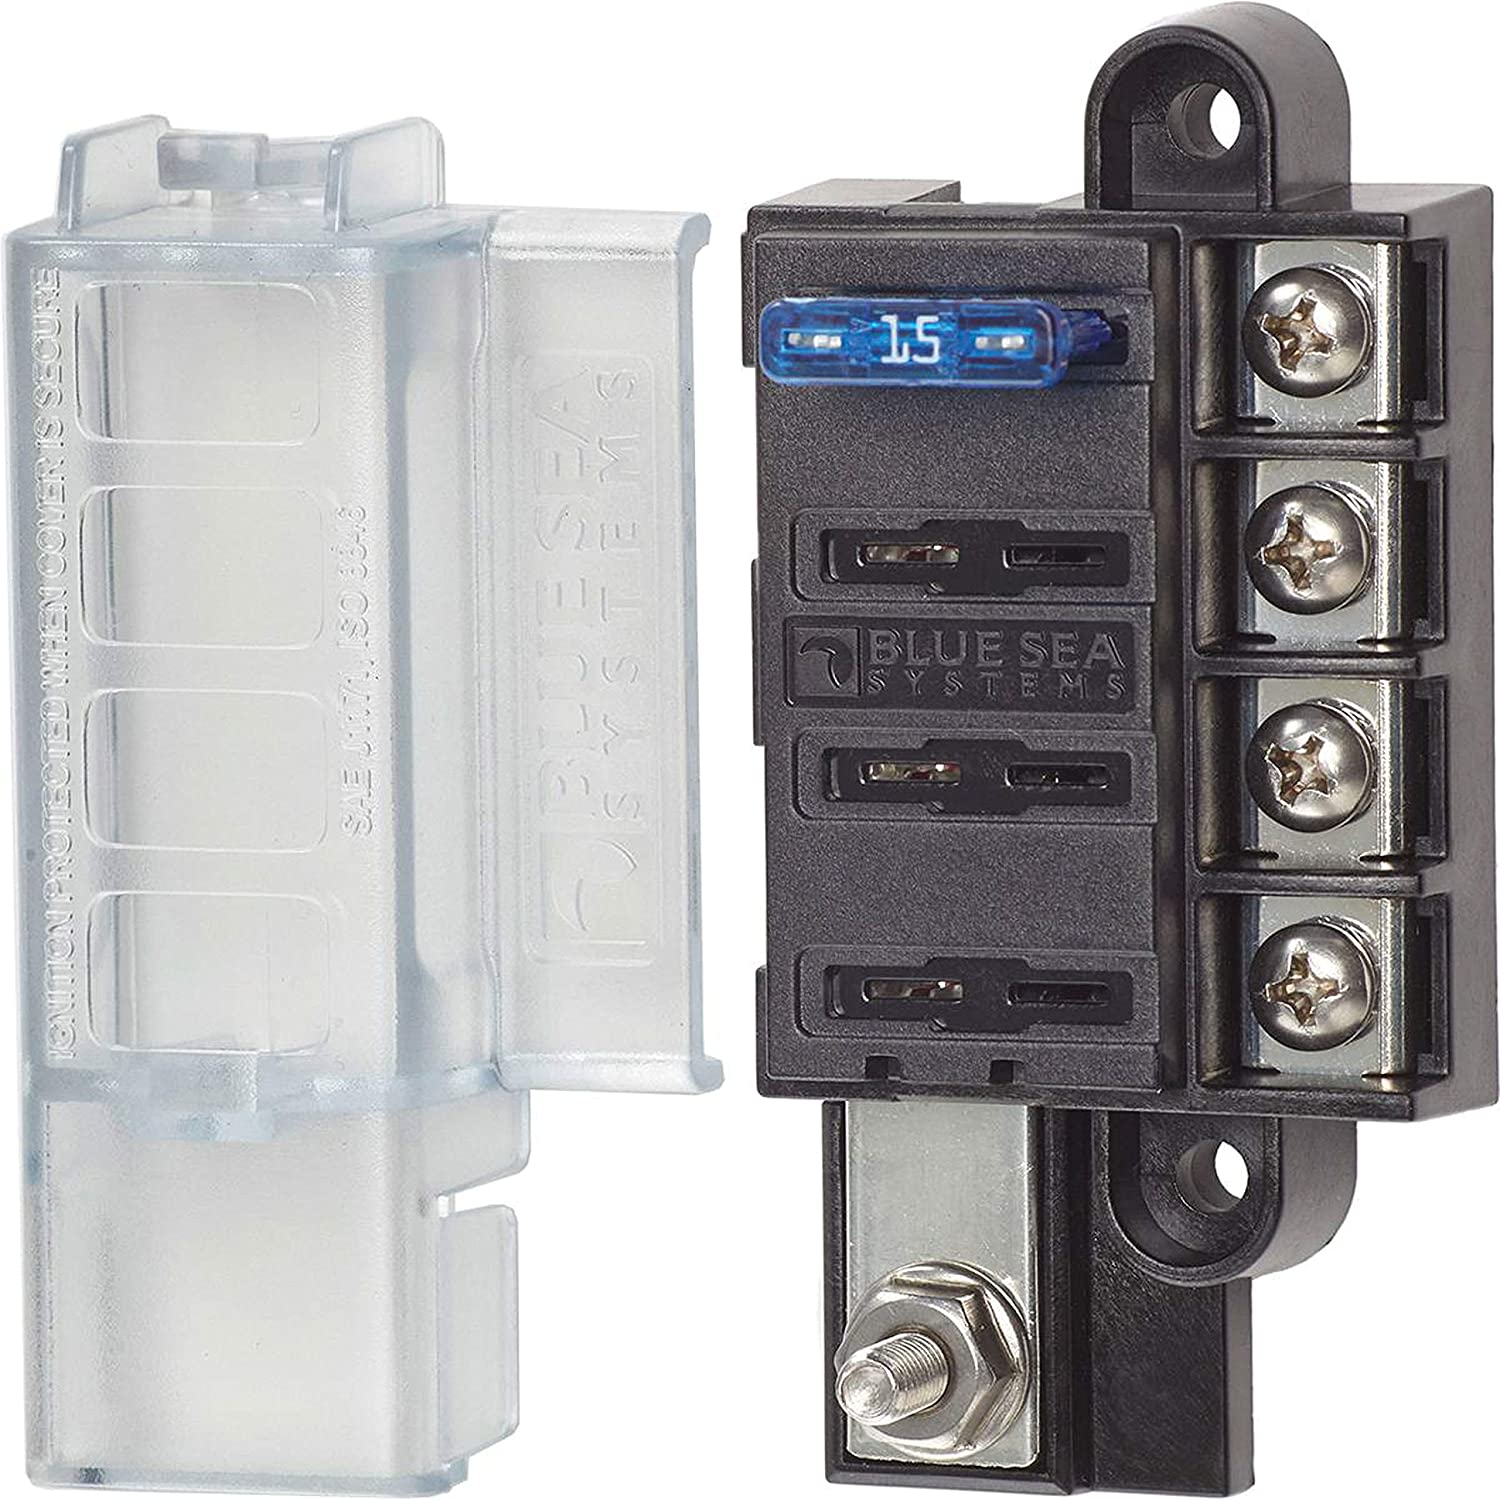 6 Plug Trailer Wiring Blue Sea Systems St Blade 12 Circuit Fuse Block Marine Box Sports Outdoors